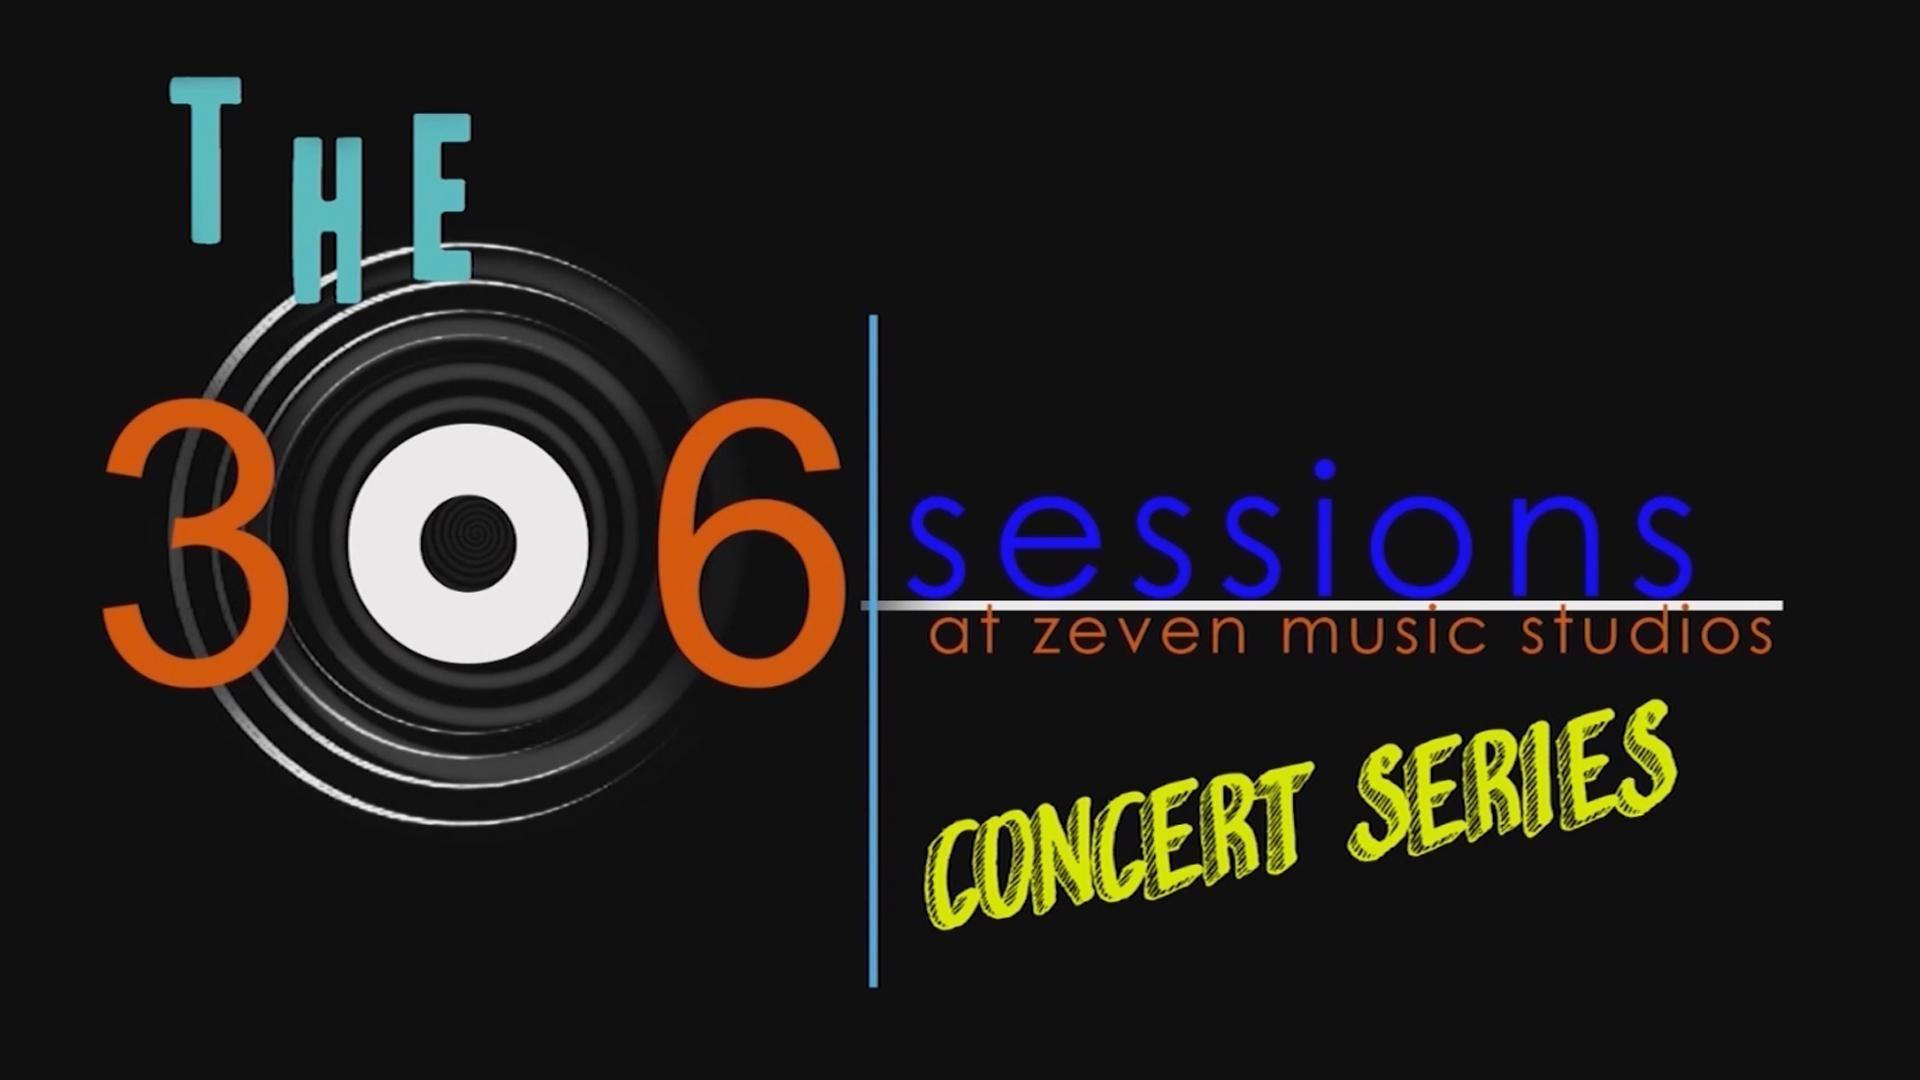 306 Sessions